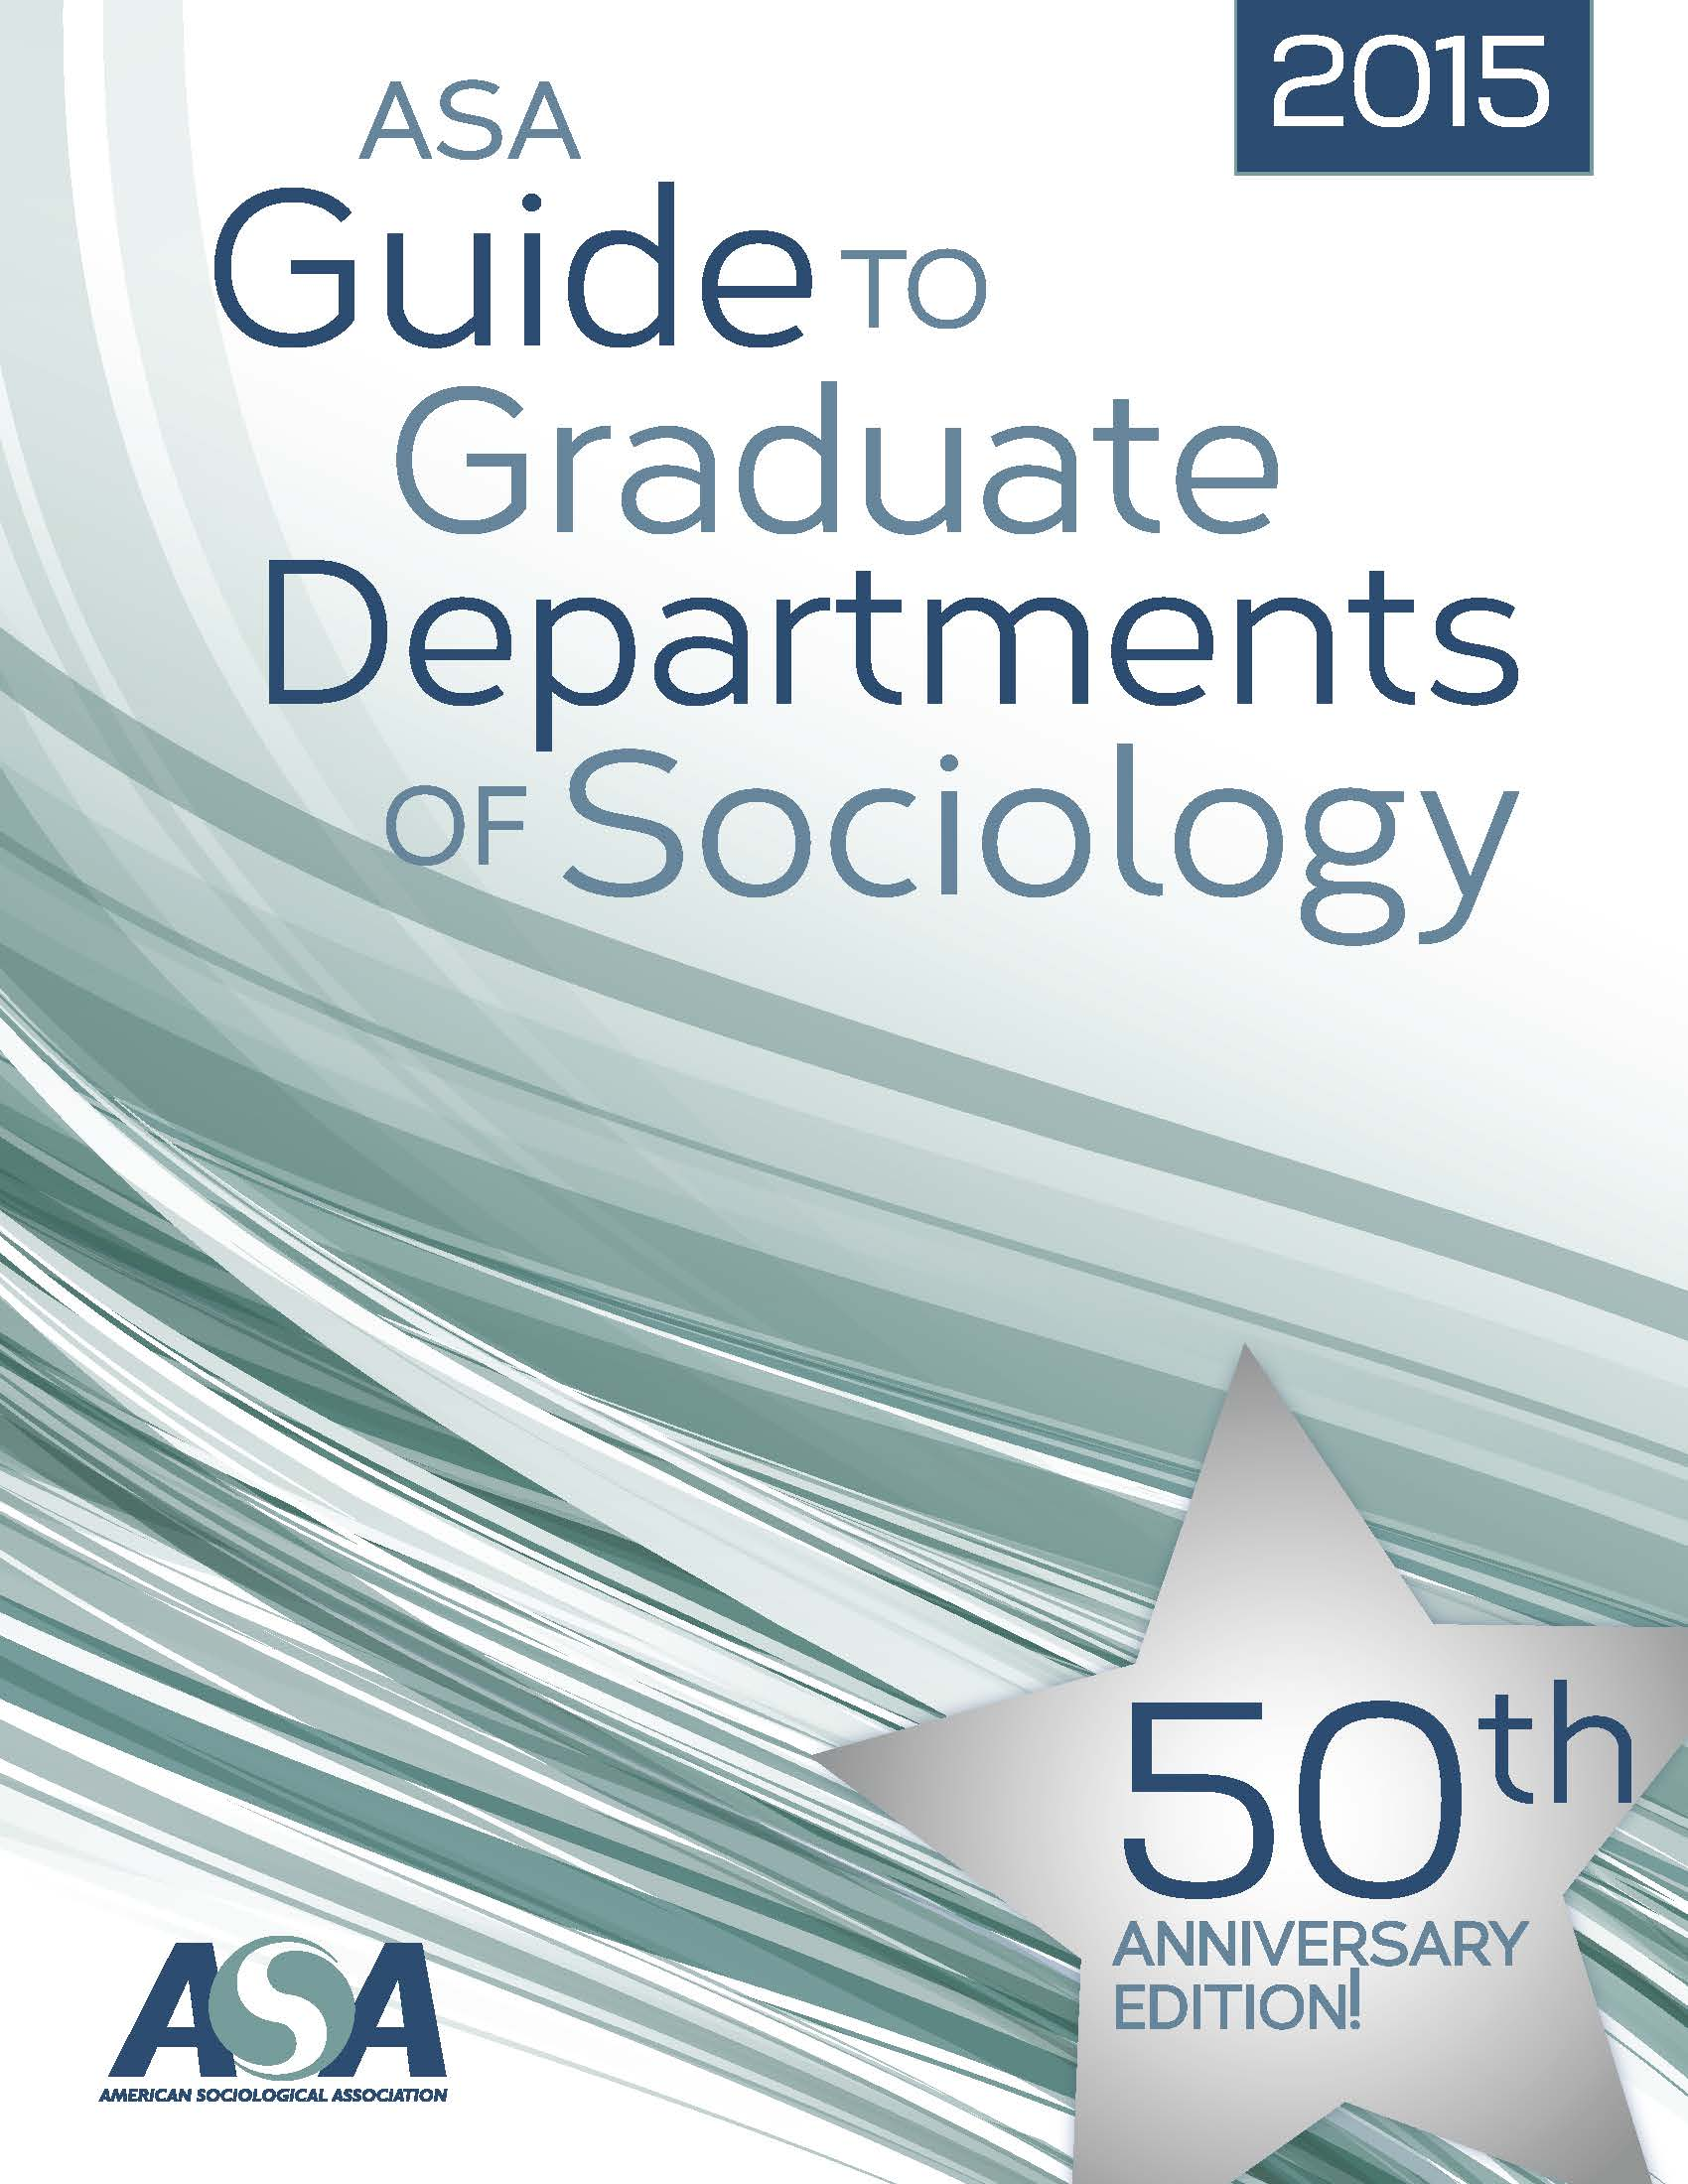 2015 ASA Guide to Graduate Departments of Sociology Cover